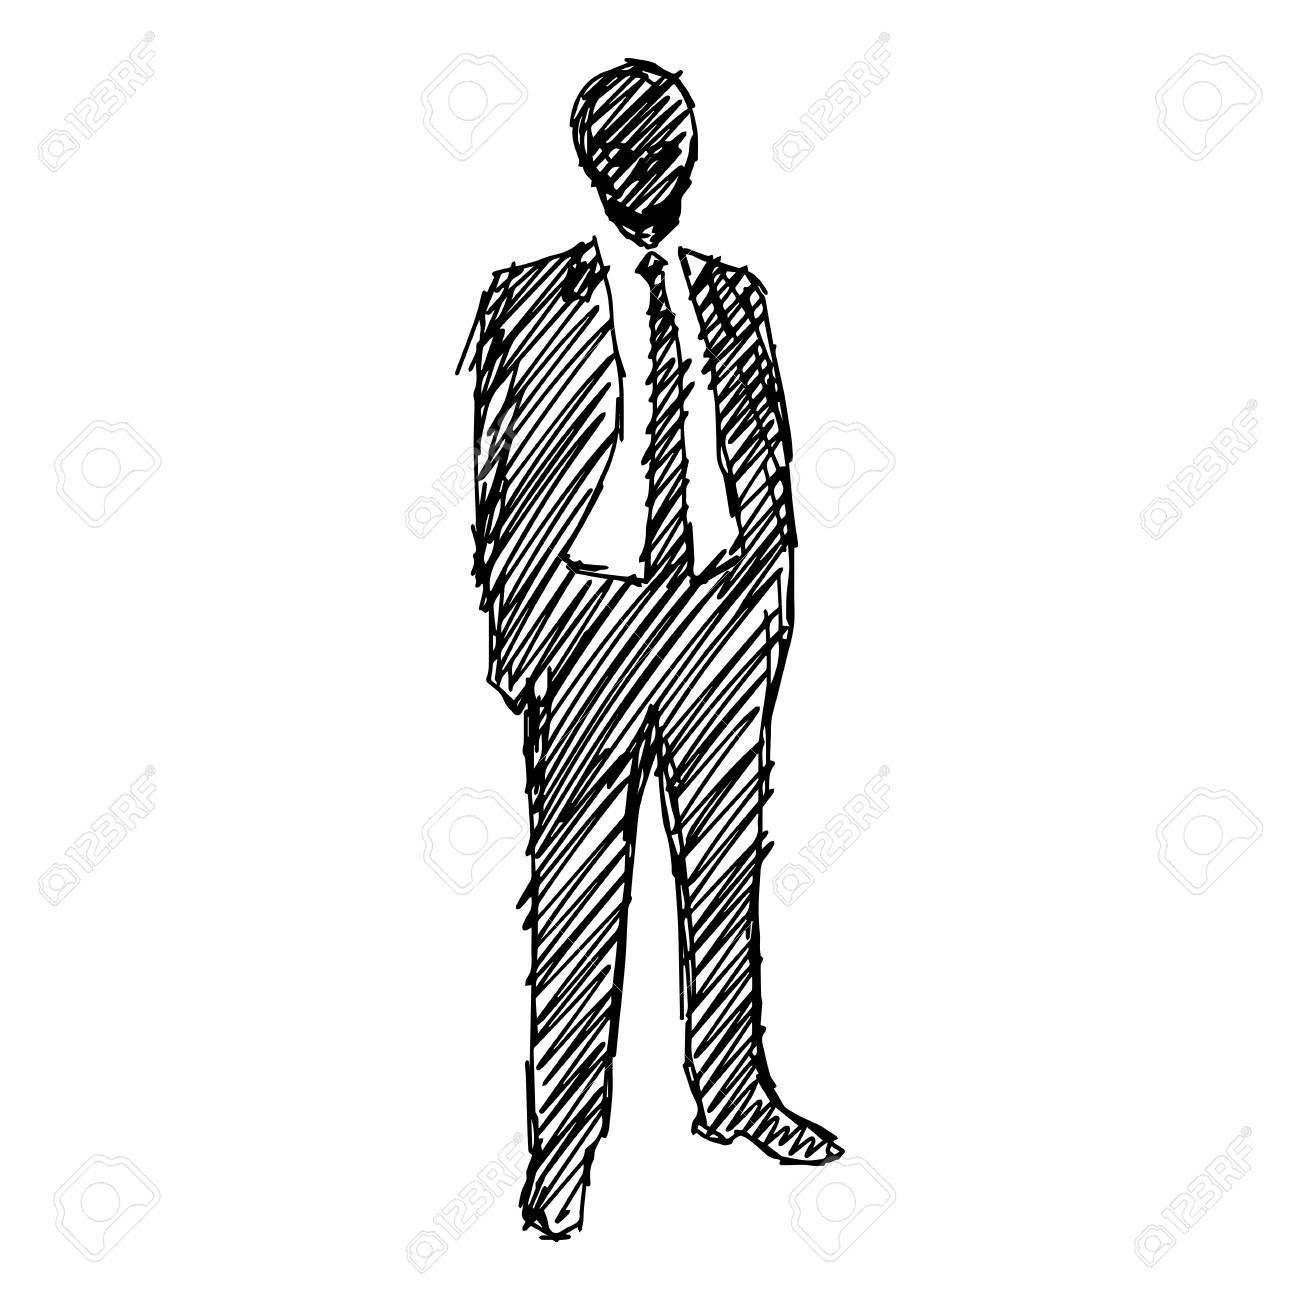 1300x1300 Hand Drawn, Silhouette, Sketch Illustration Of Man In Suit